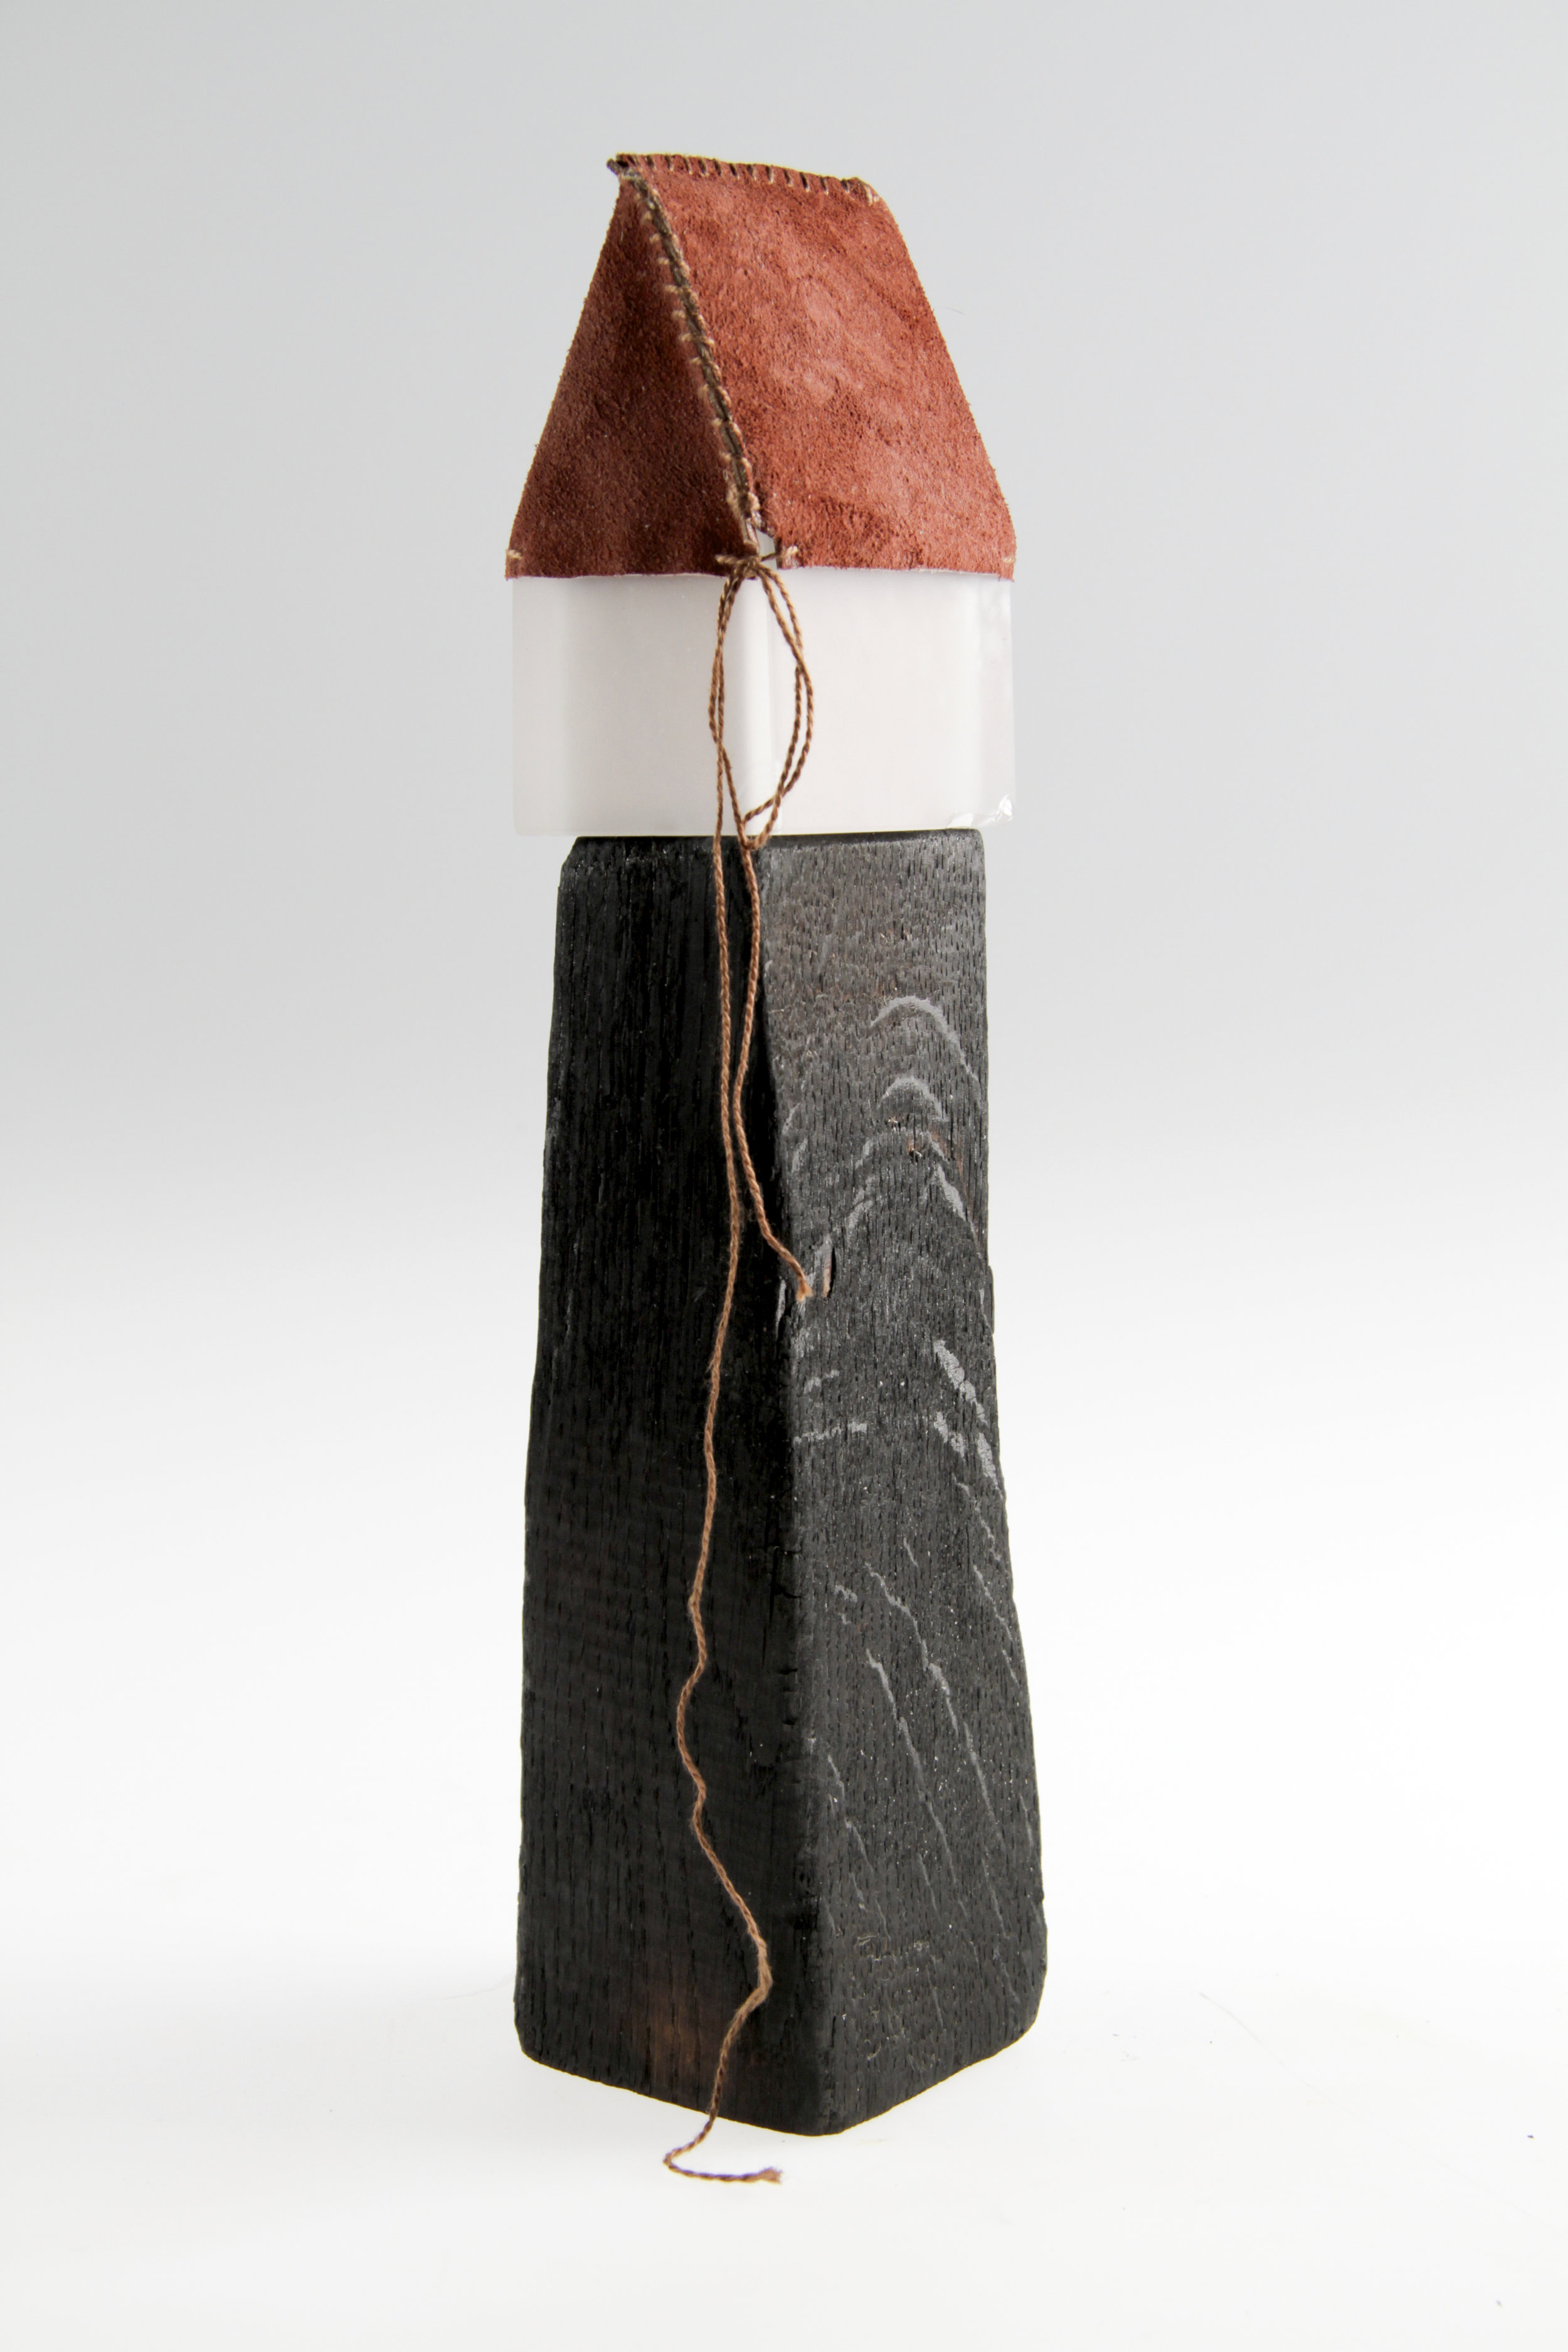 Cast glass, burnt wood, leather and thread. 2011